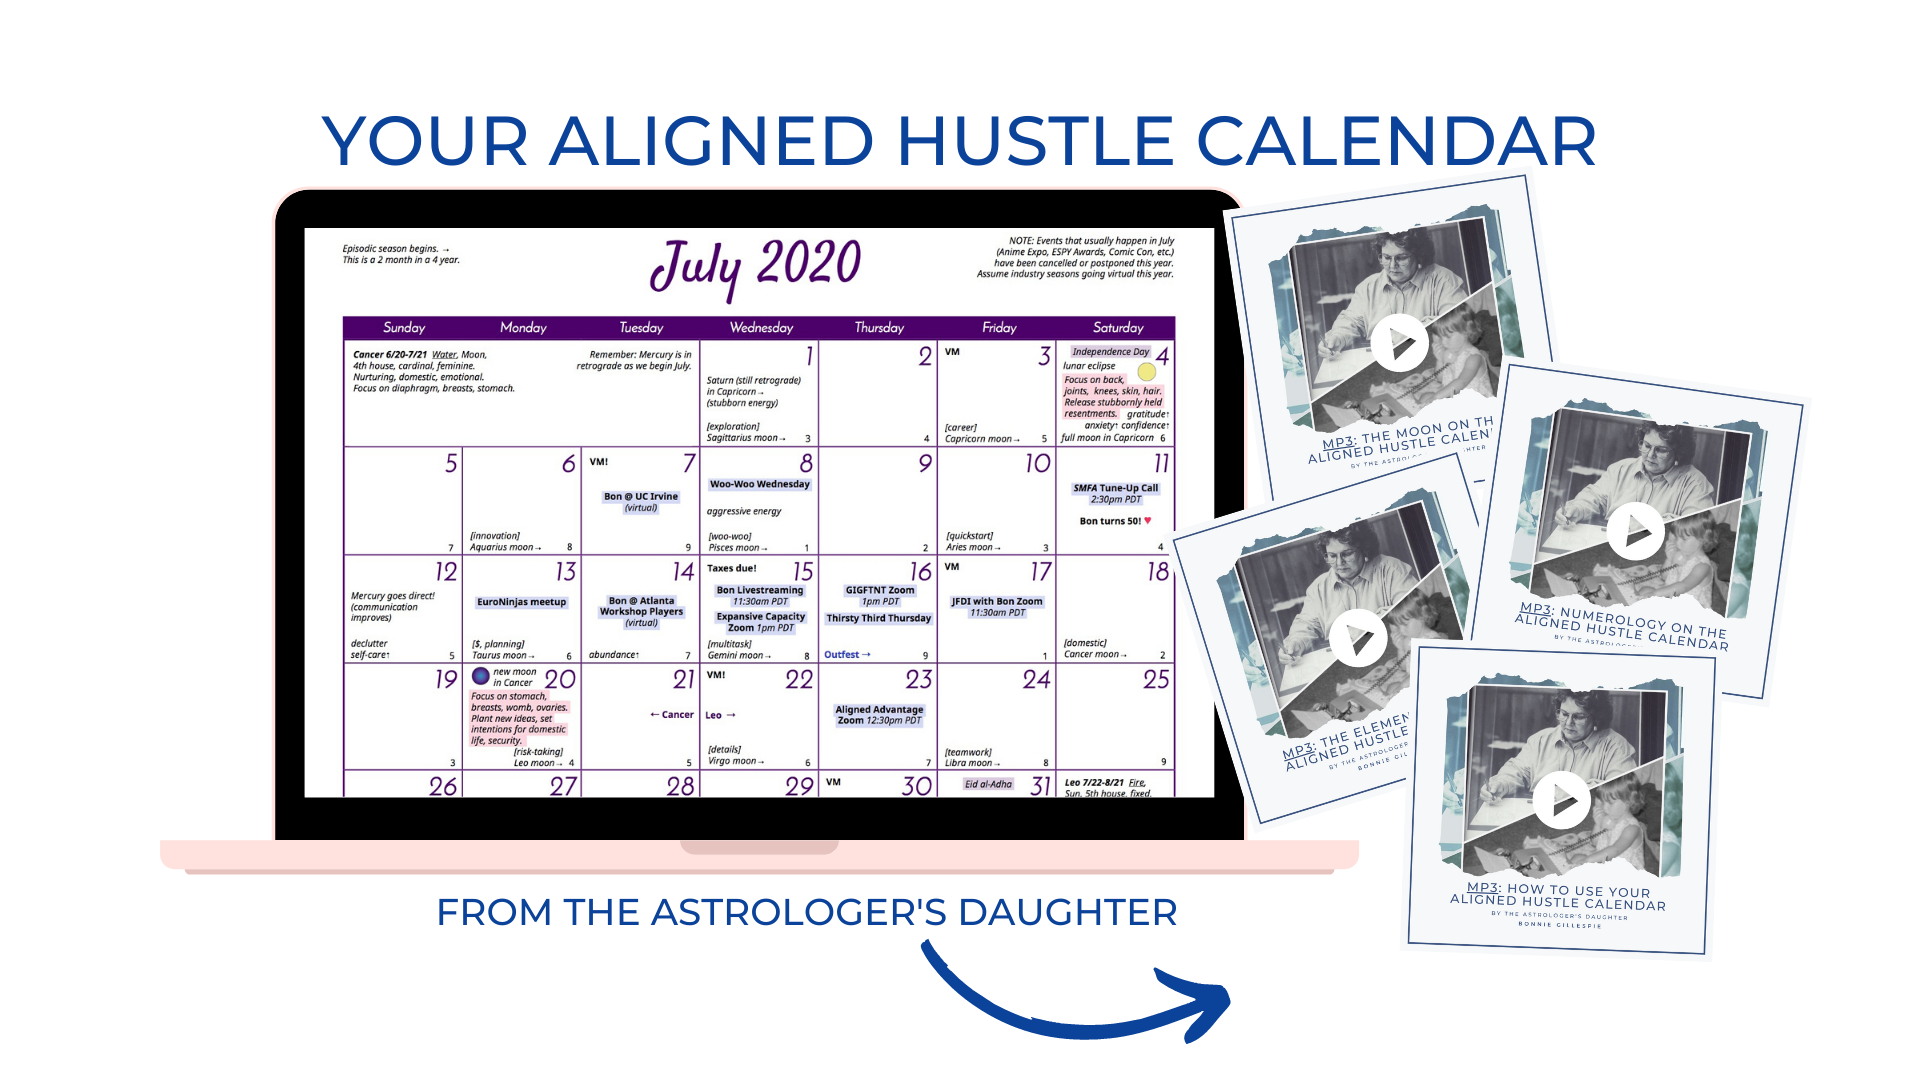 Laptop with Sample Aligned Hustle Calendar from The Astrologer's Daughters and 4 MP3s